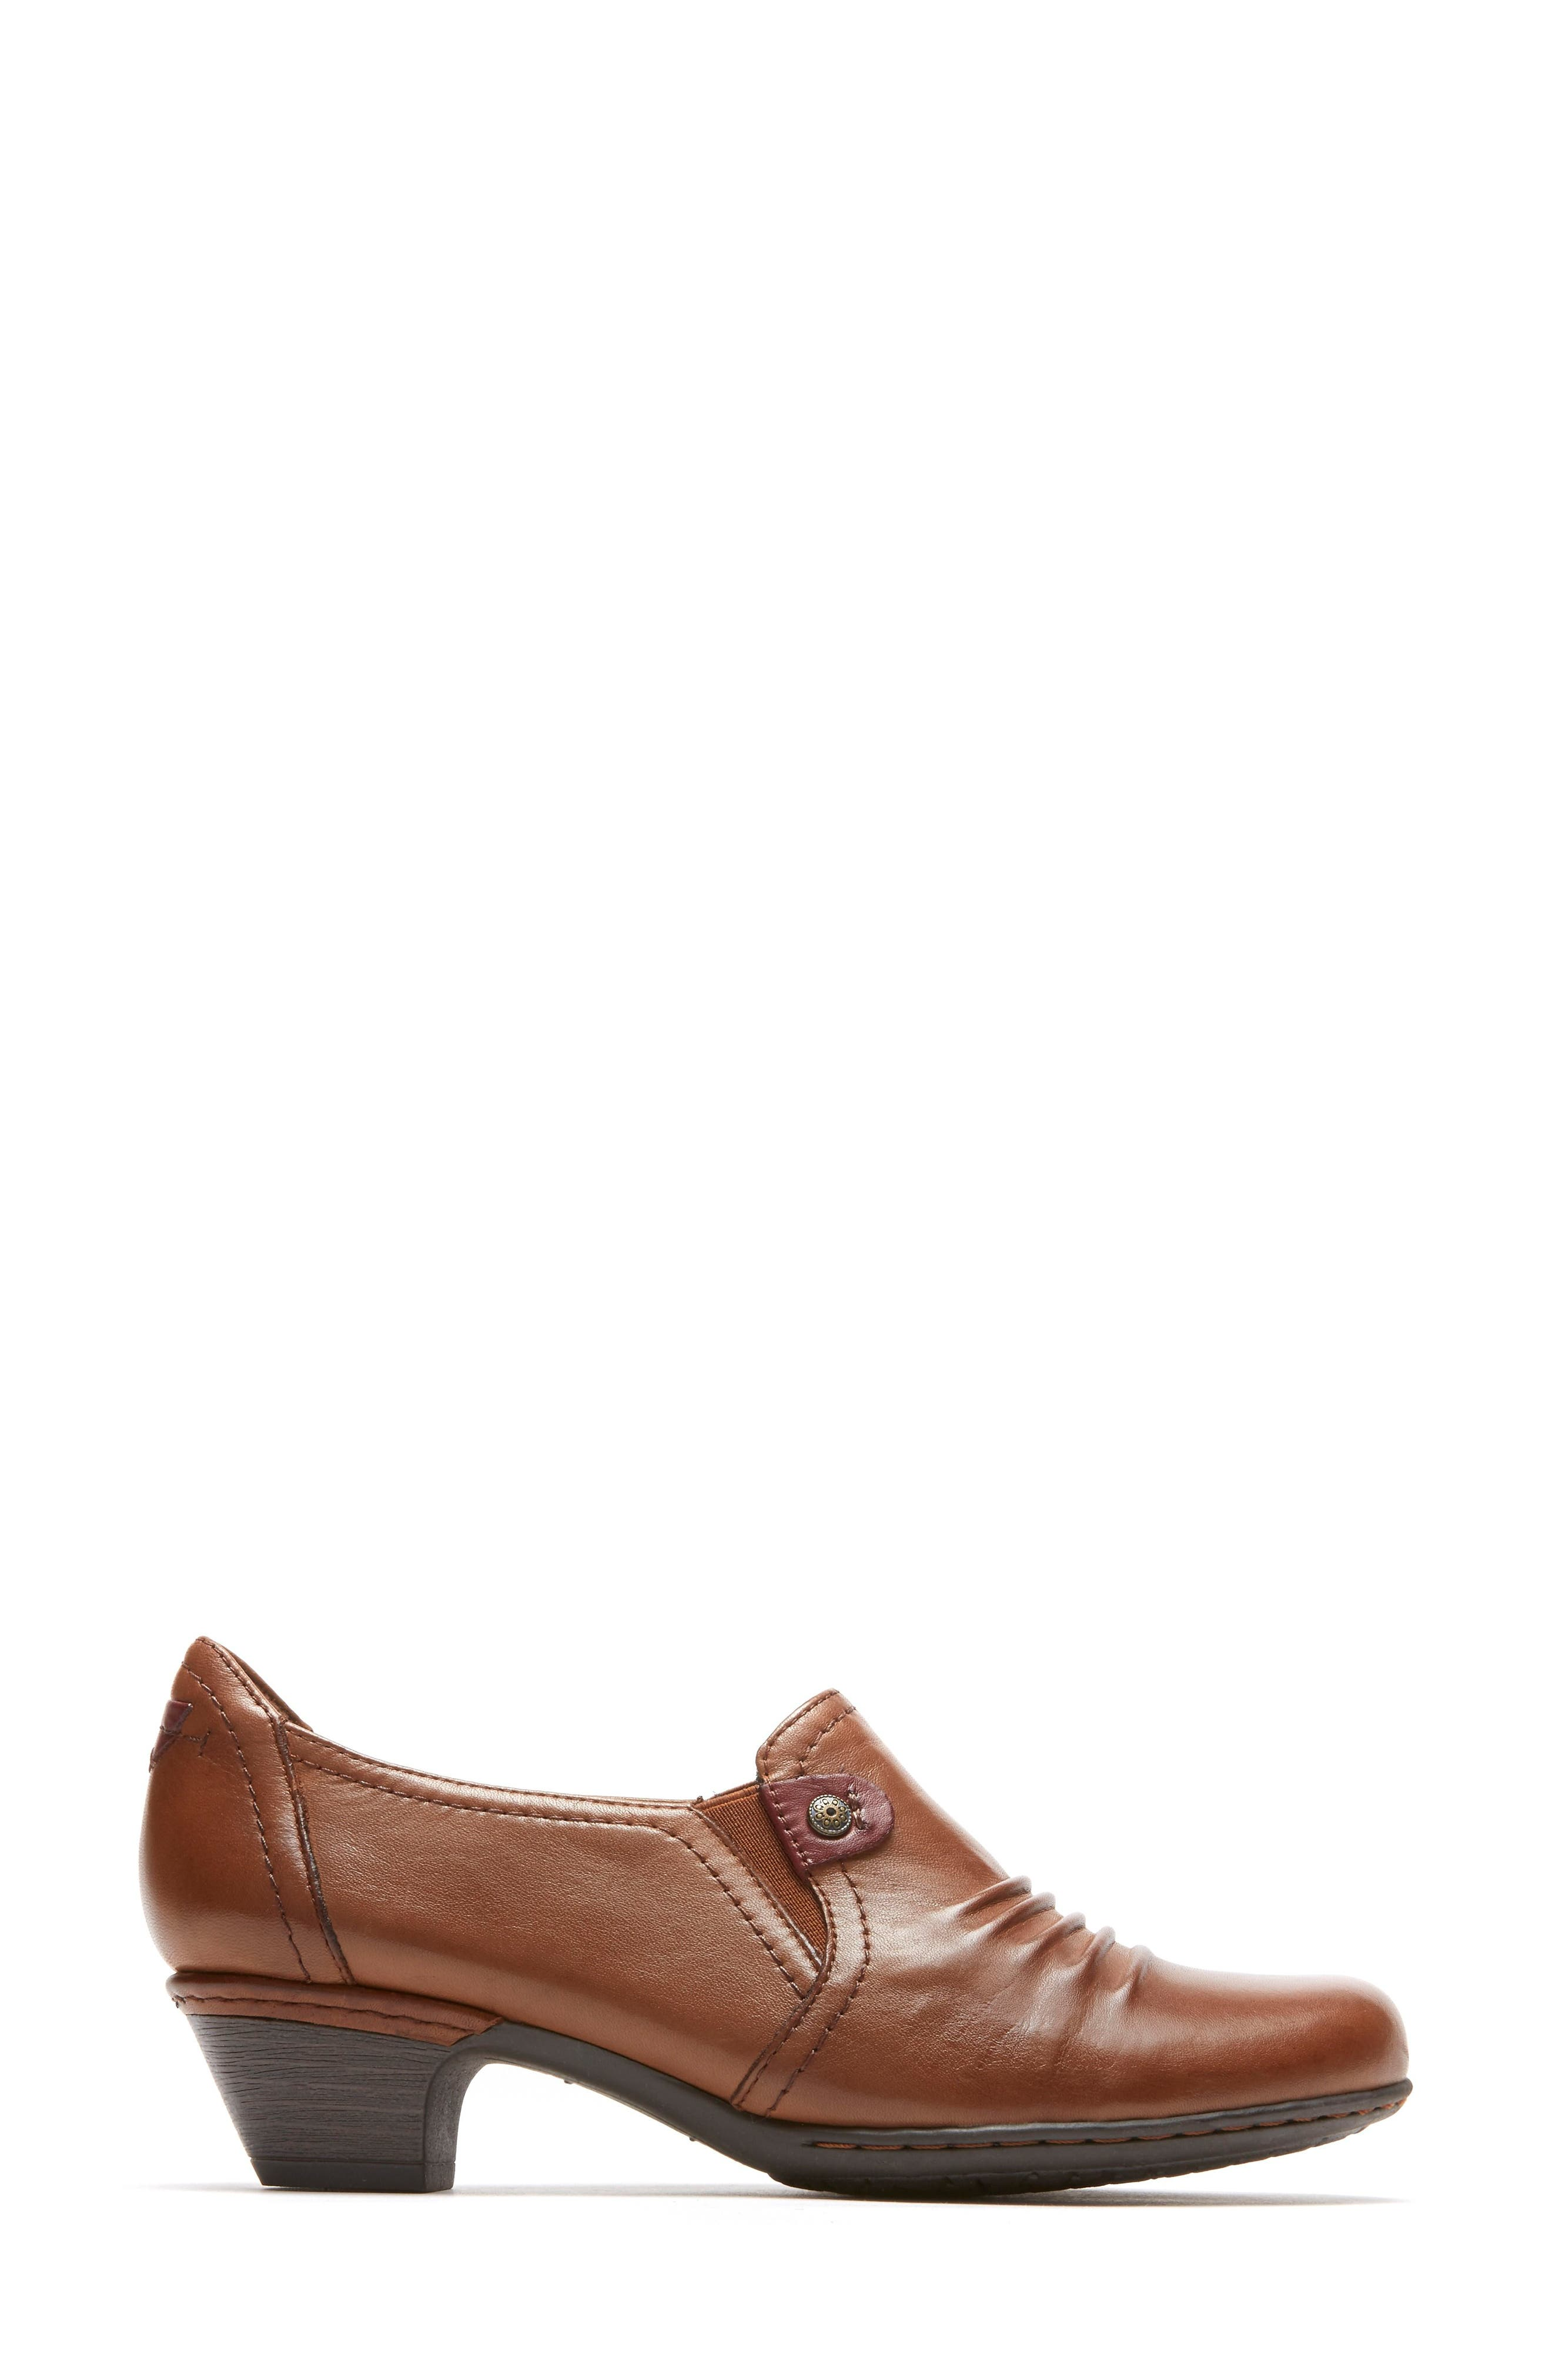 Adele Low Pump,                             Alternate thumbnail 3, color,                             ALMOND LEATHER